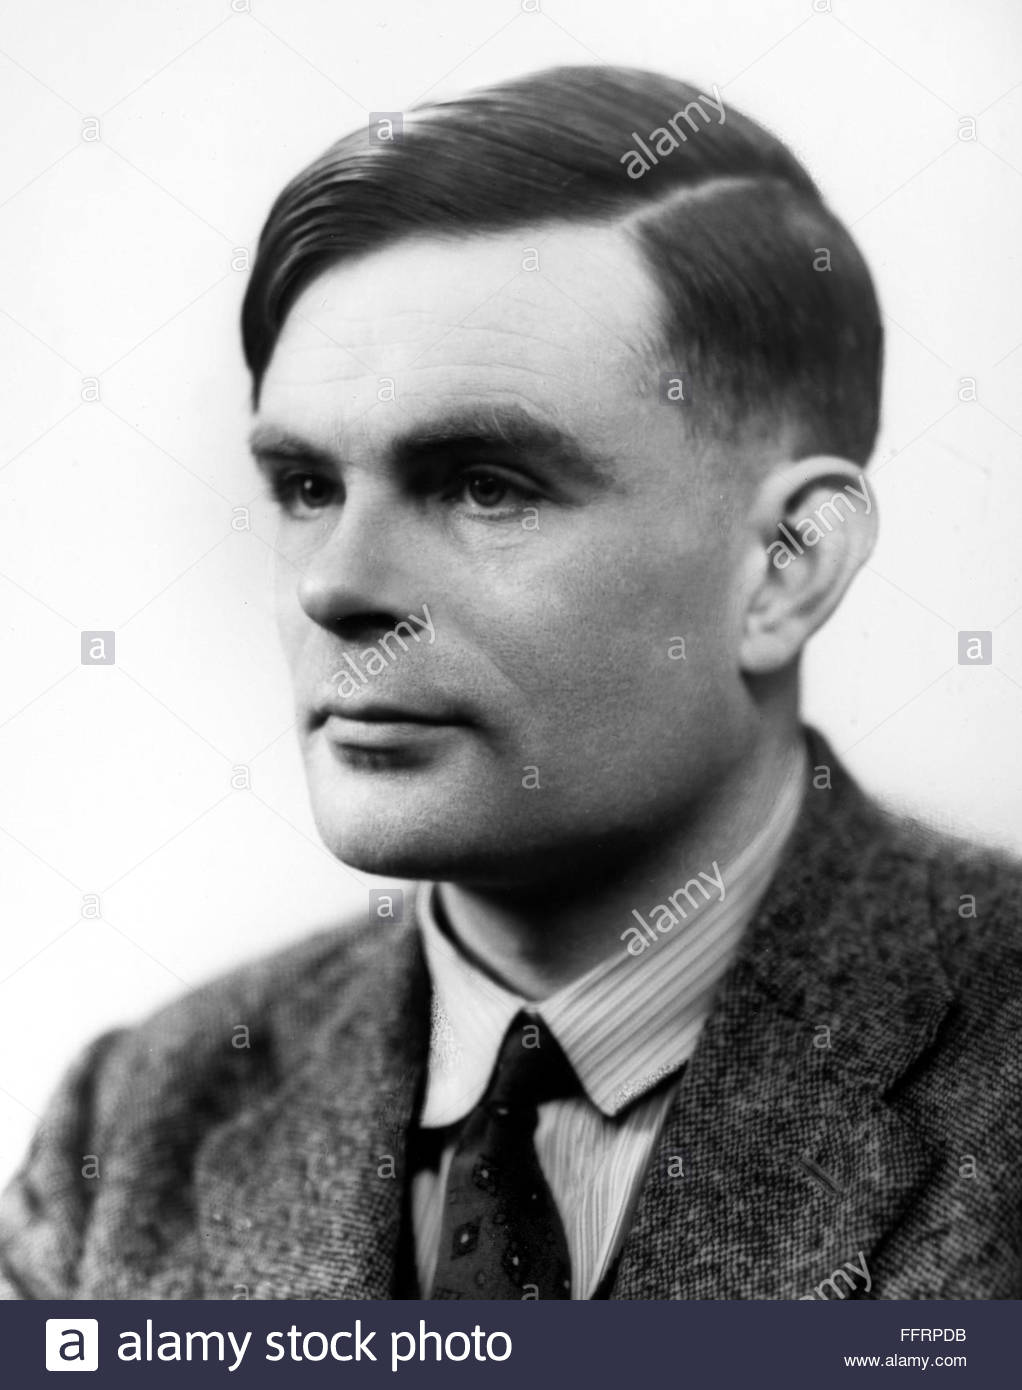 ALAN MATHISON TURING /n(1912-1954). English mathematician and logician. Photographed in 1951. Stock Photo